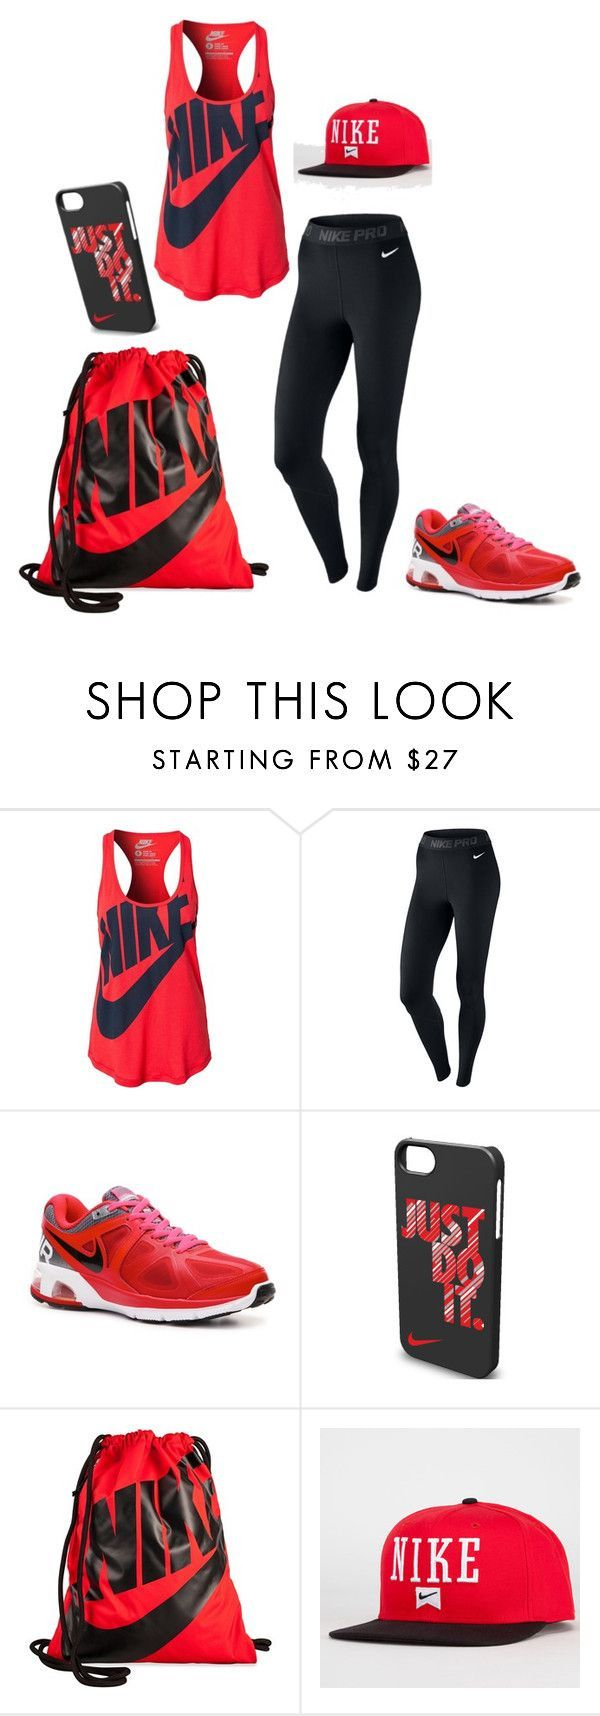 Sports Nike running shoes so beautiful and exquisite,click to come online shopping, Nike womens running shoes are designed with innovative features and technologies to help you run your best, whatever your goals and skill level.